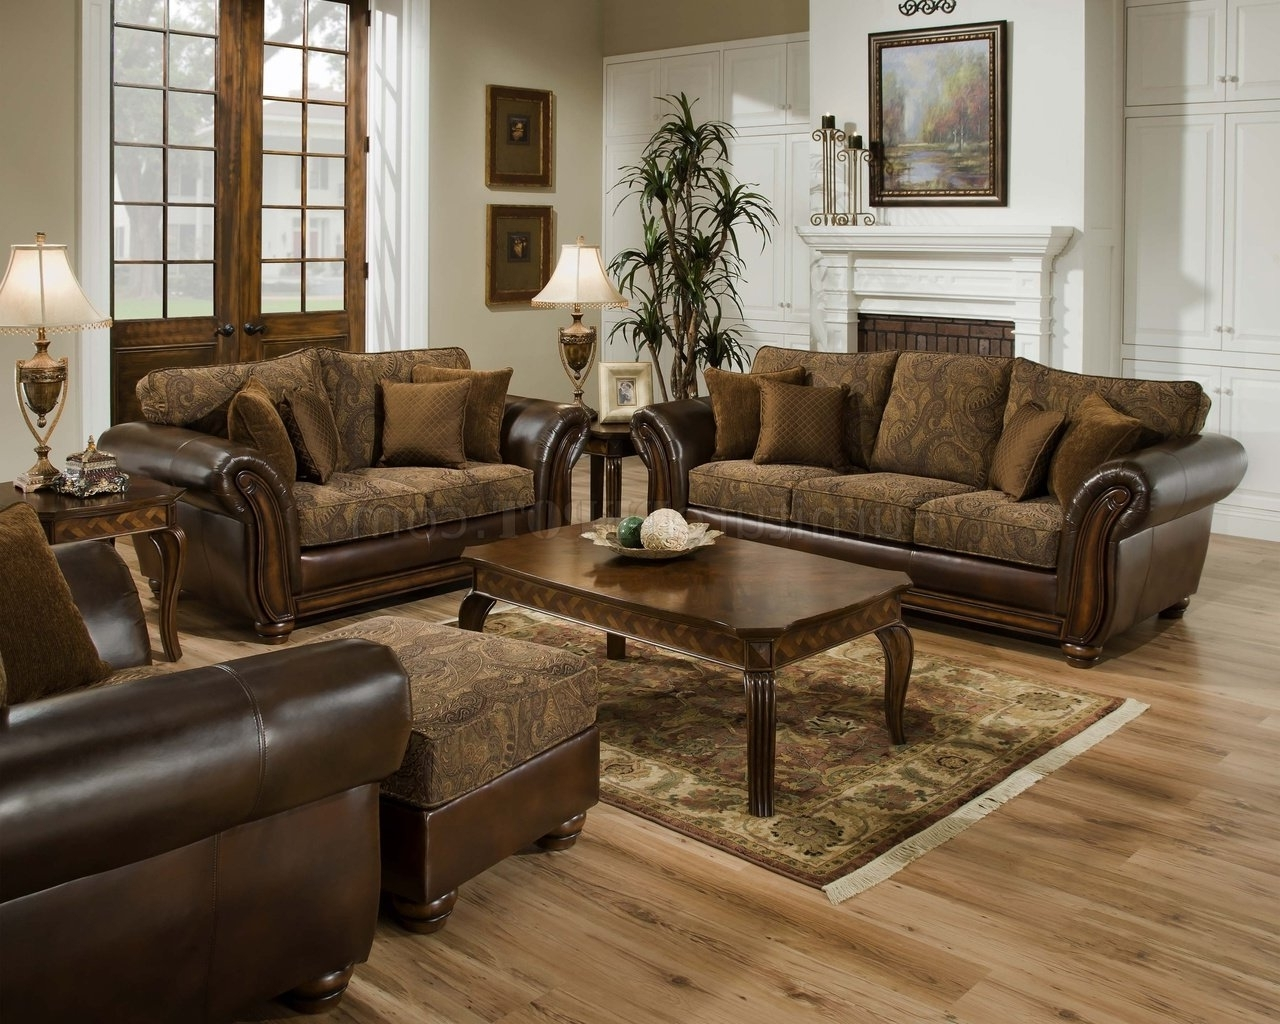 Vintage Chenille Sofa, Loveseat & Chaise Set W/bonded Leather in Widely used Sofa Loveseat And Chaise Sets